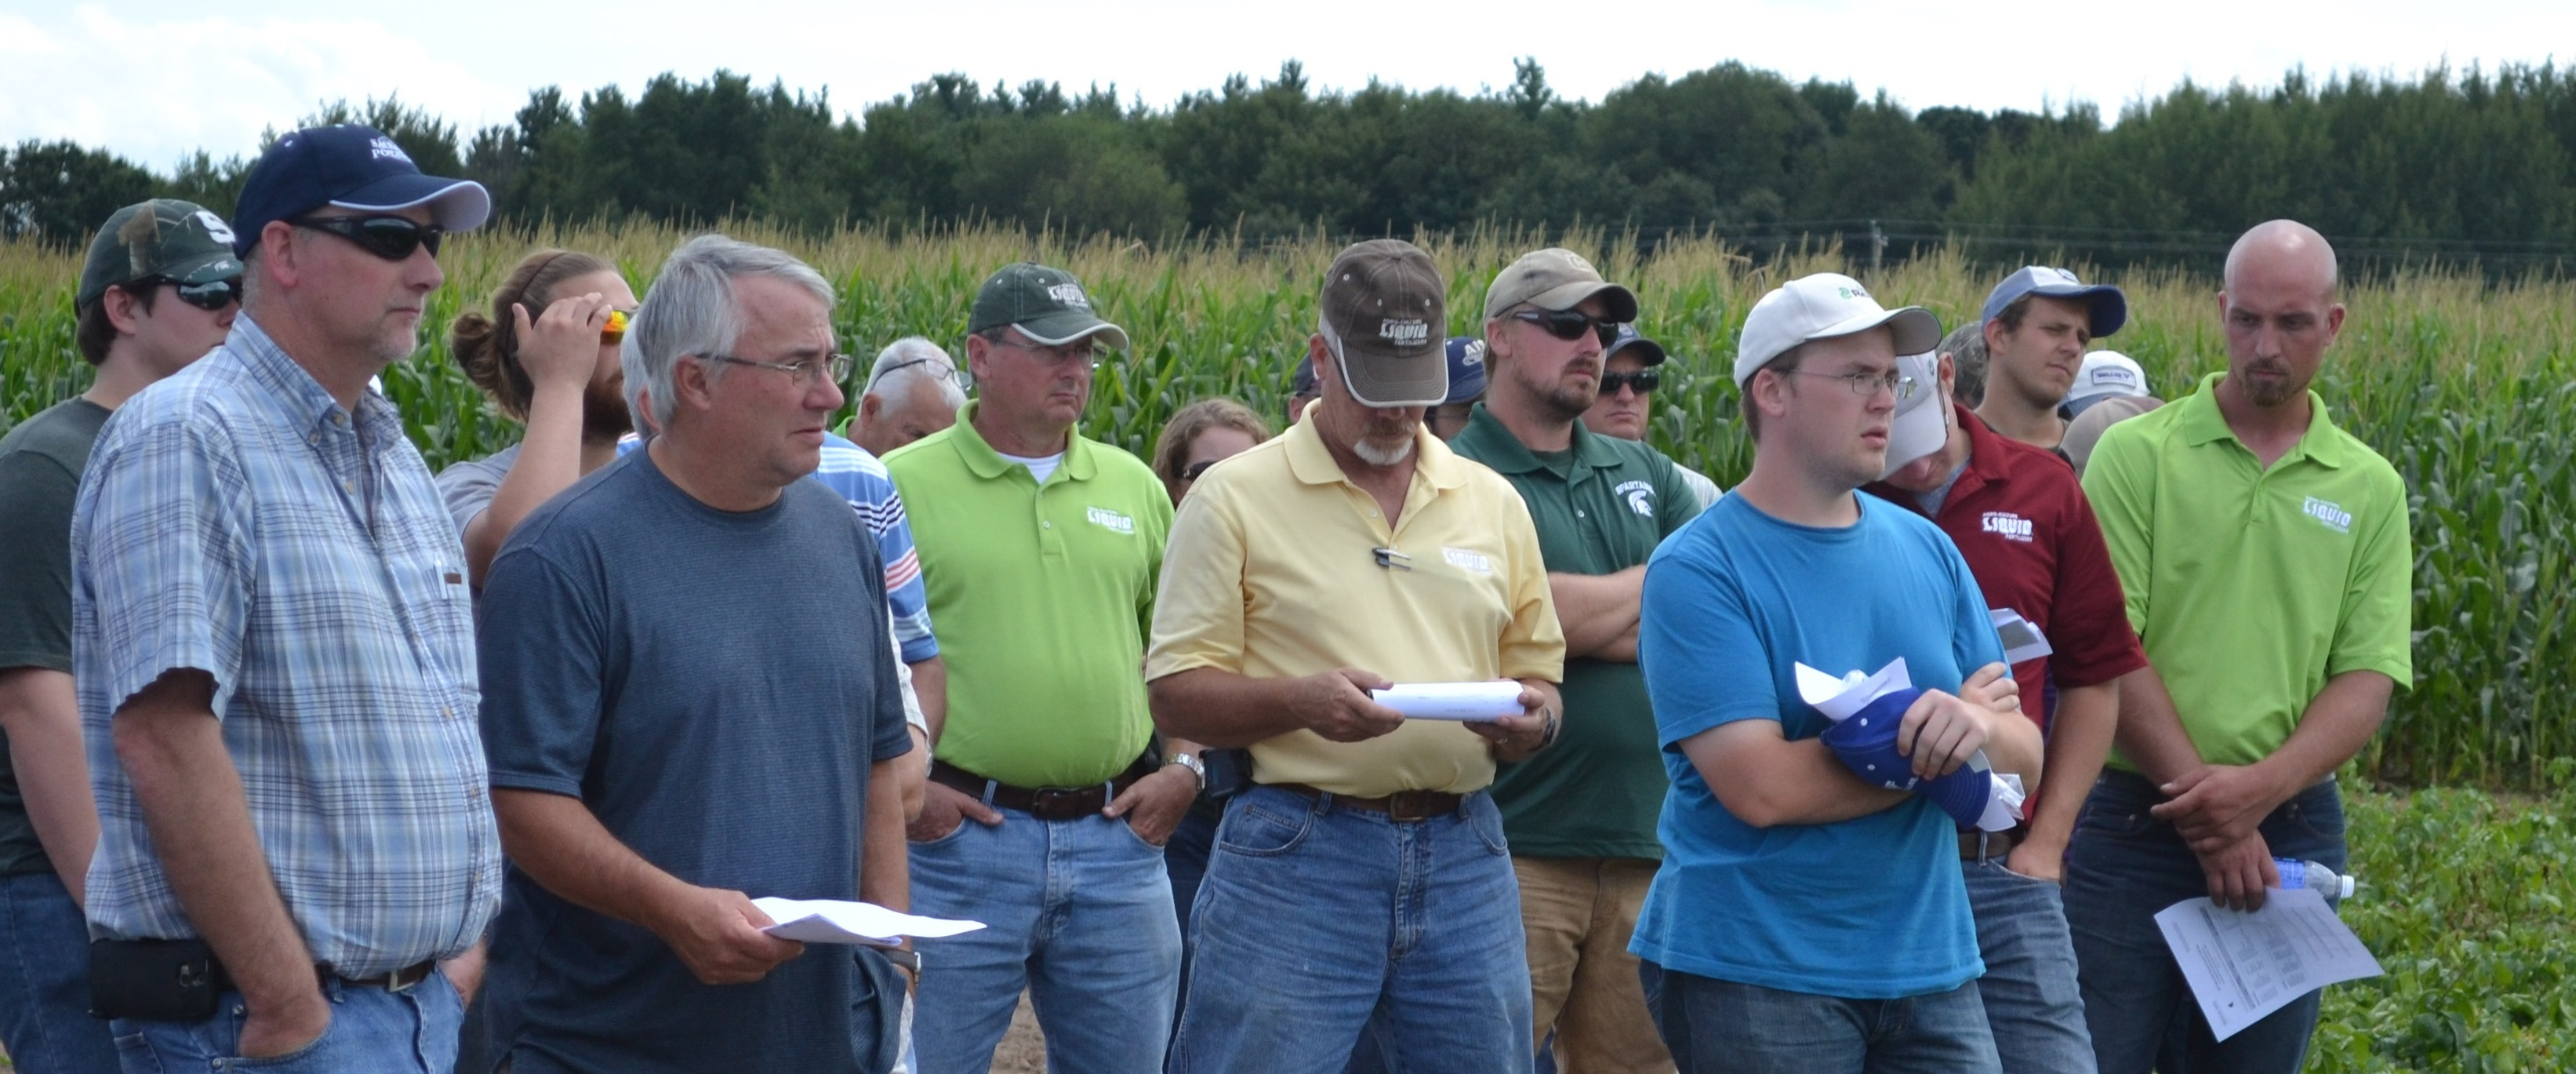 Growers at field day